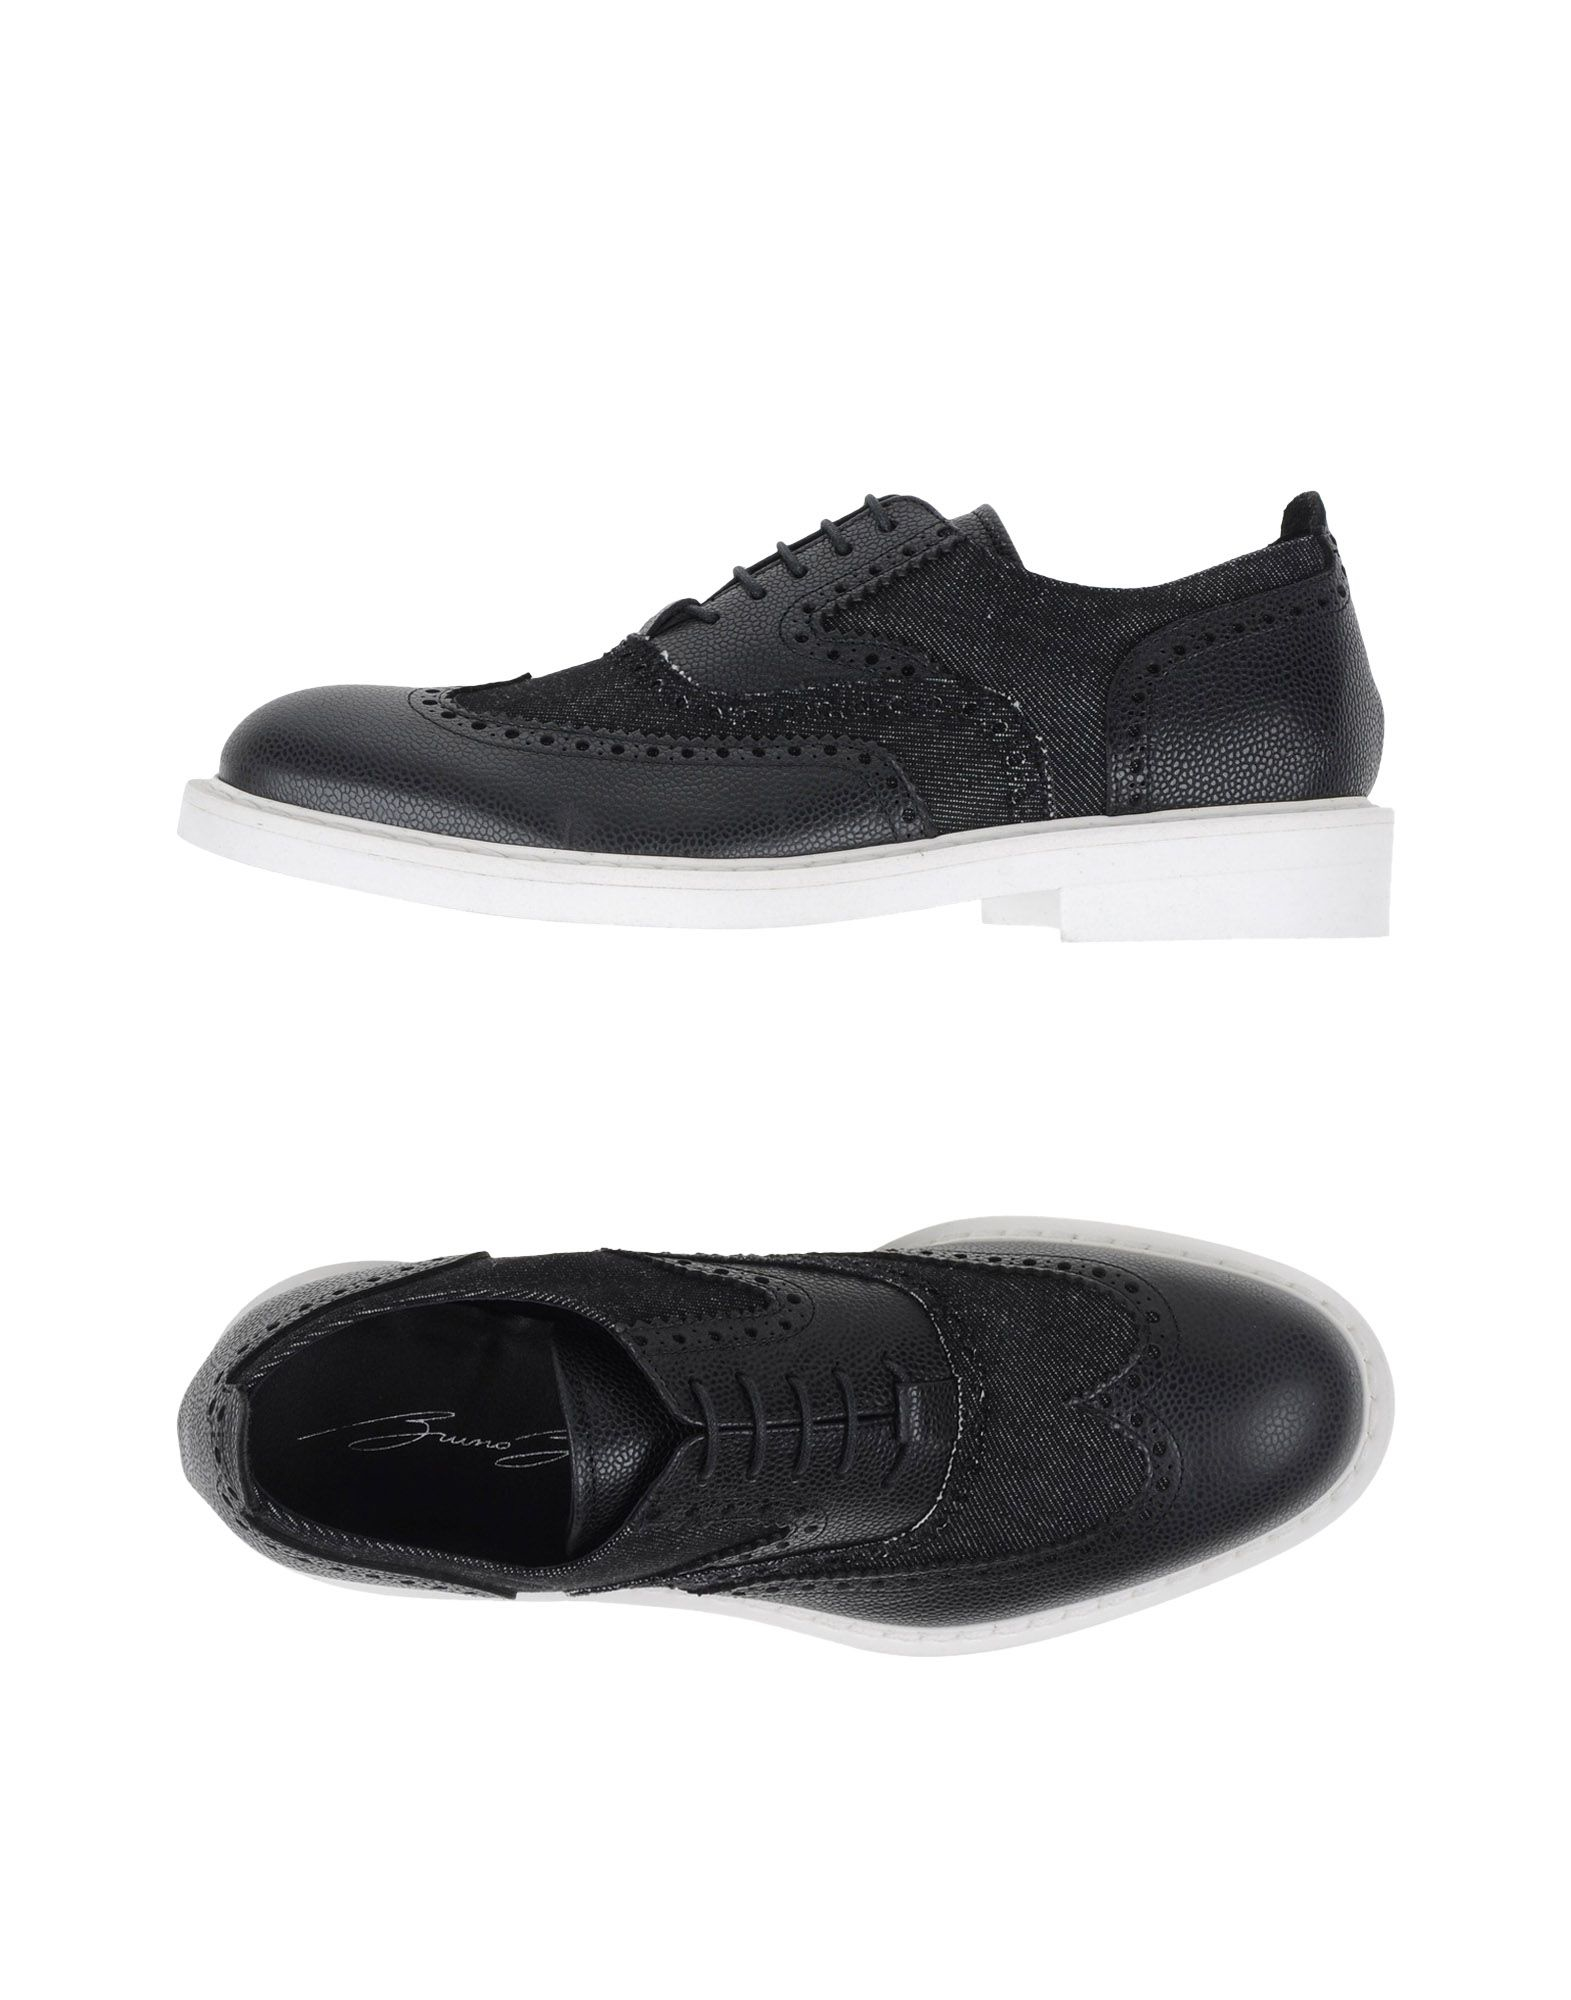 bruno bordese lace up shoes in black for lyst